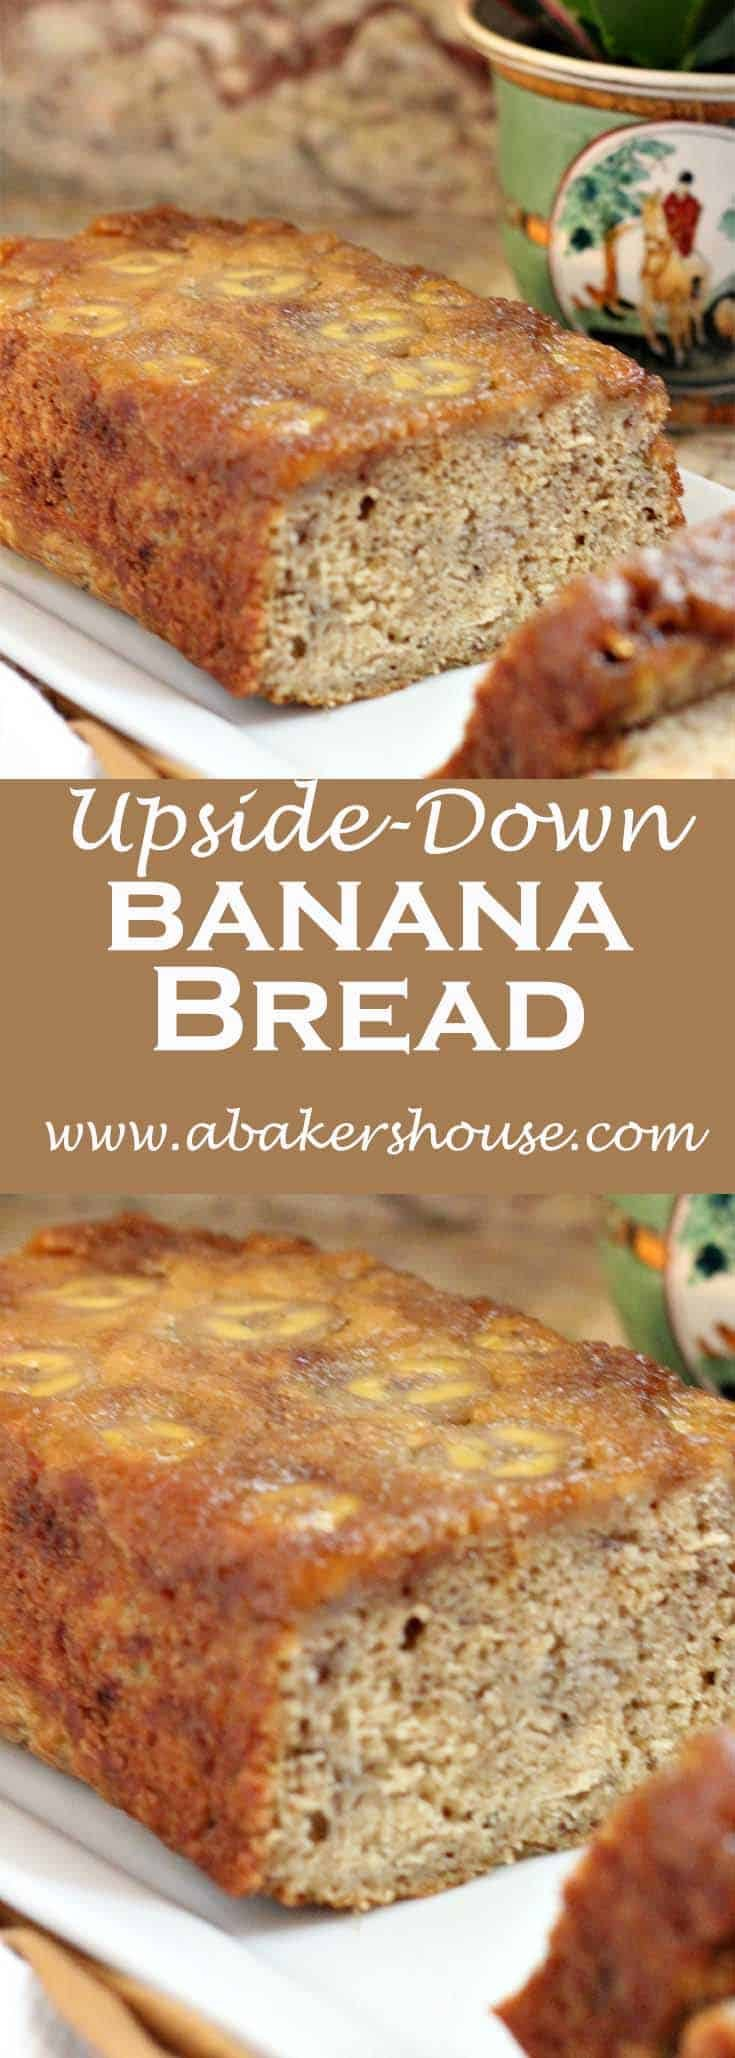 You may have heard of upside down pineapple cake but have you tried the same technique with bananas? Adding brown sugar and melted butter to the bottom of the loaf pan then letting some bananas soak up that caramel-gooey goodness really makes this a special way to bake banana bread. #bananabread #upsidedowncake #abakershouse